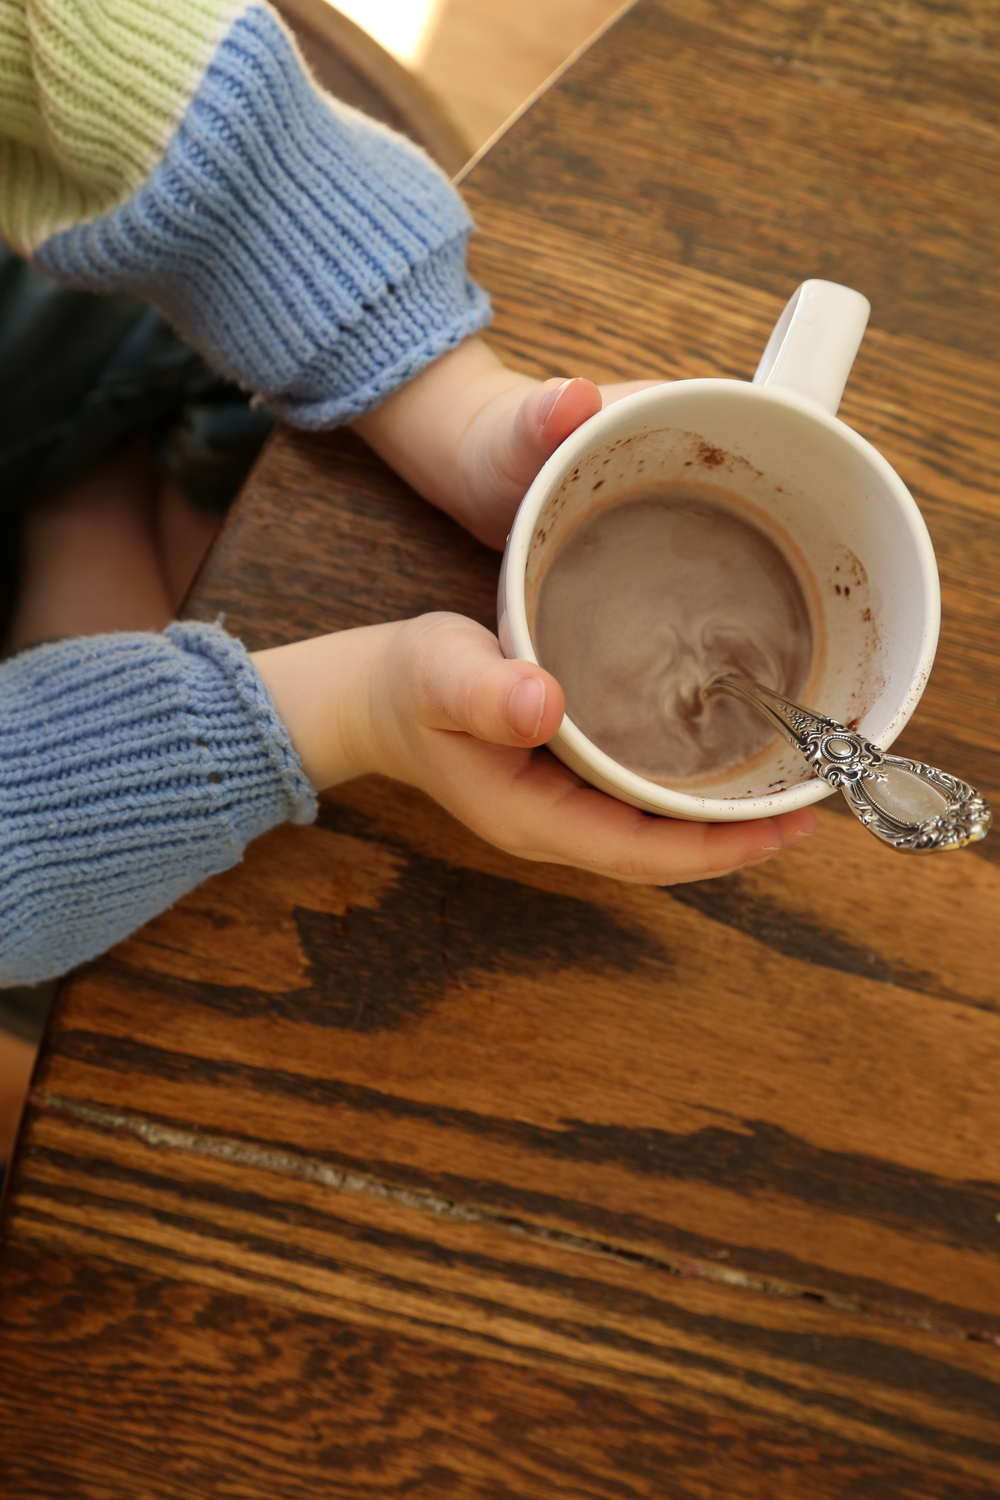 A little hot cocoa to wrap up our morning